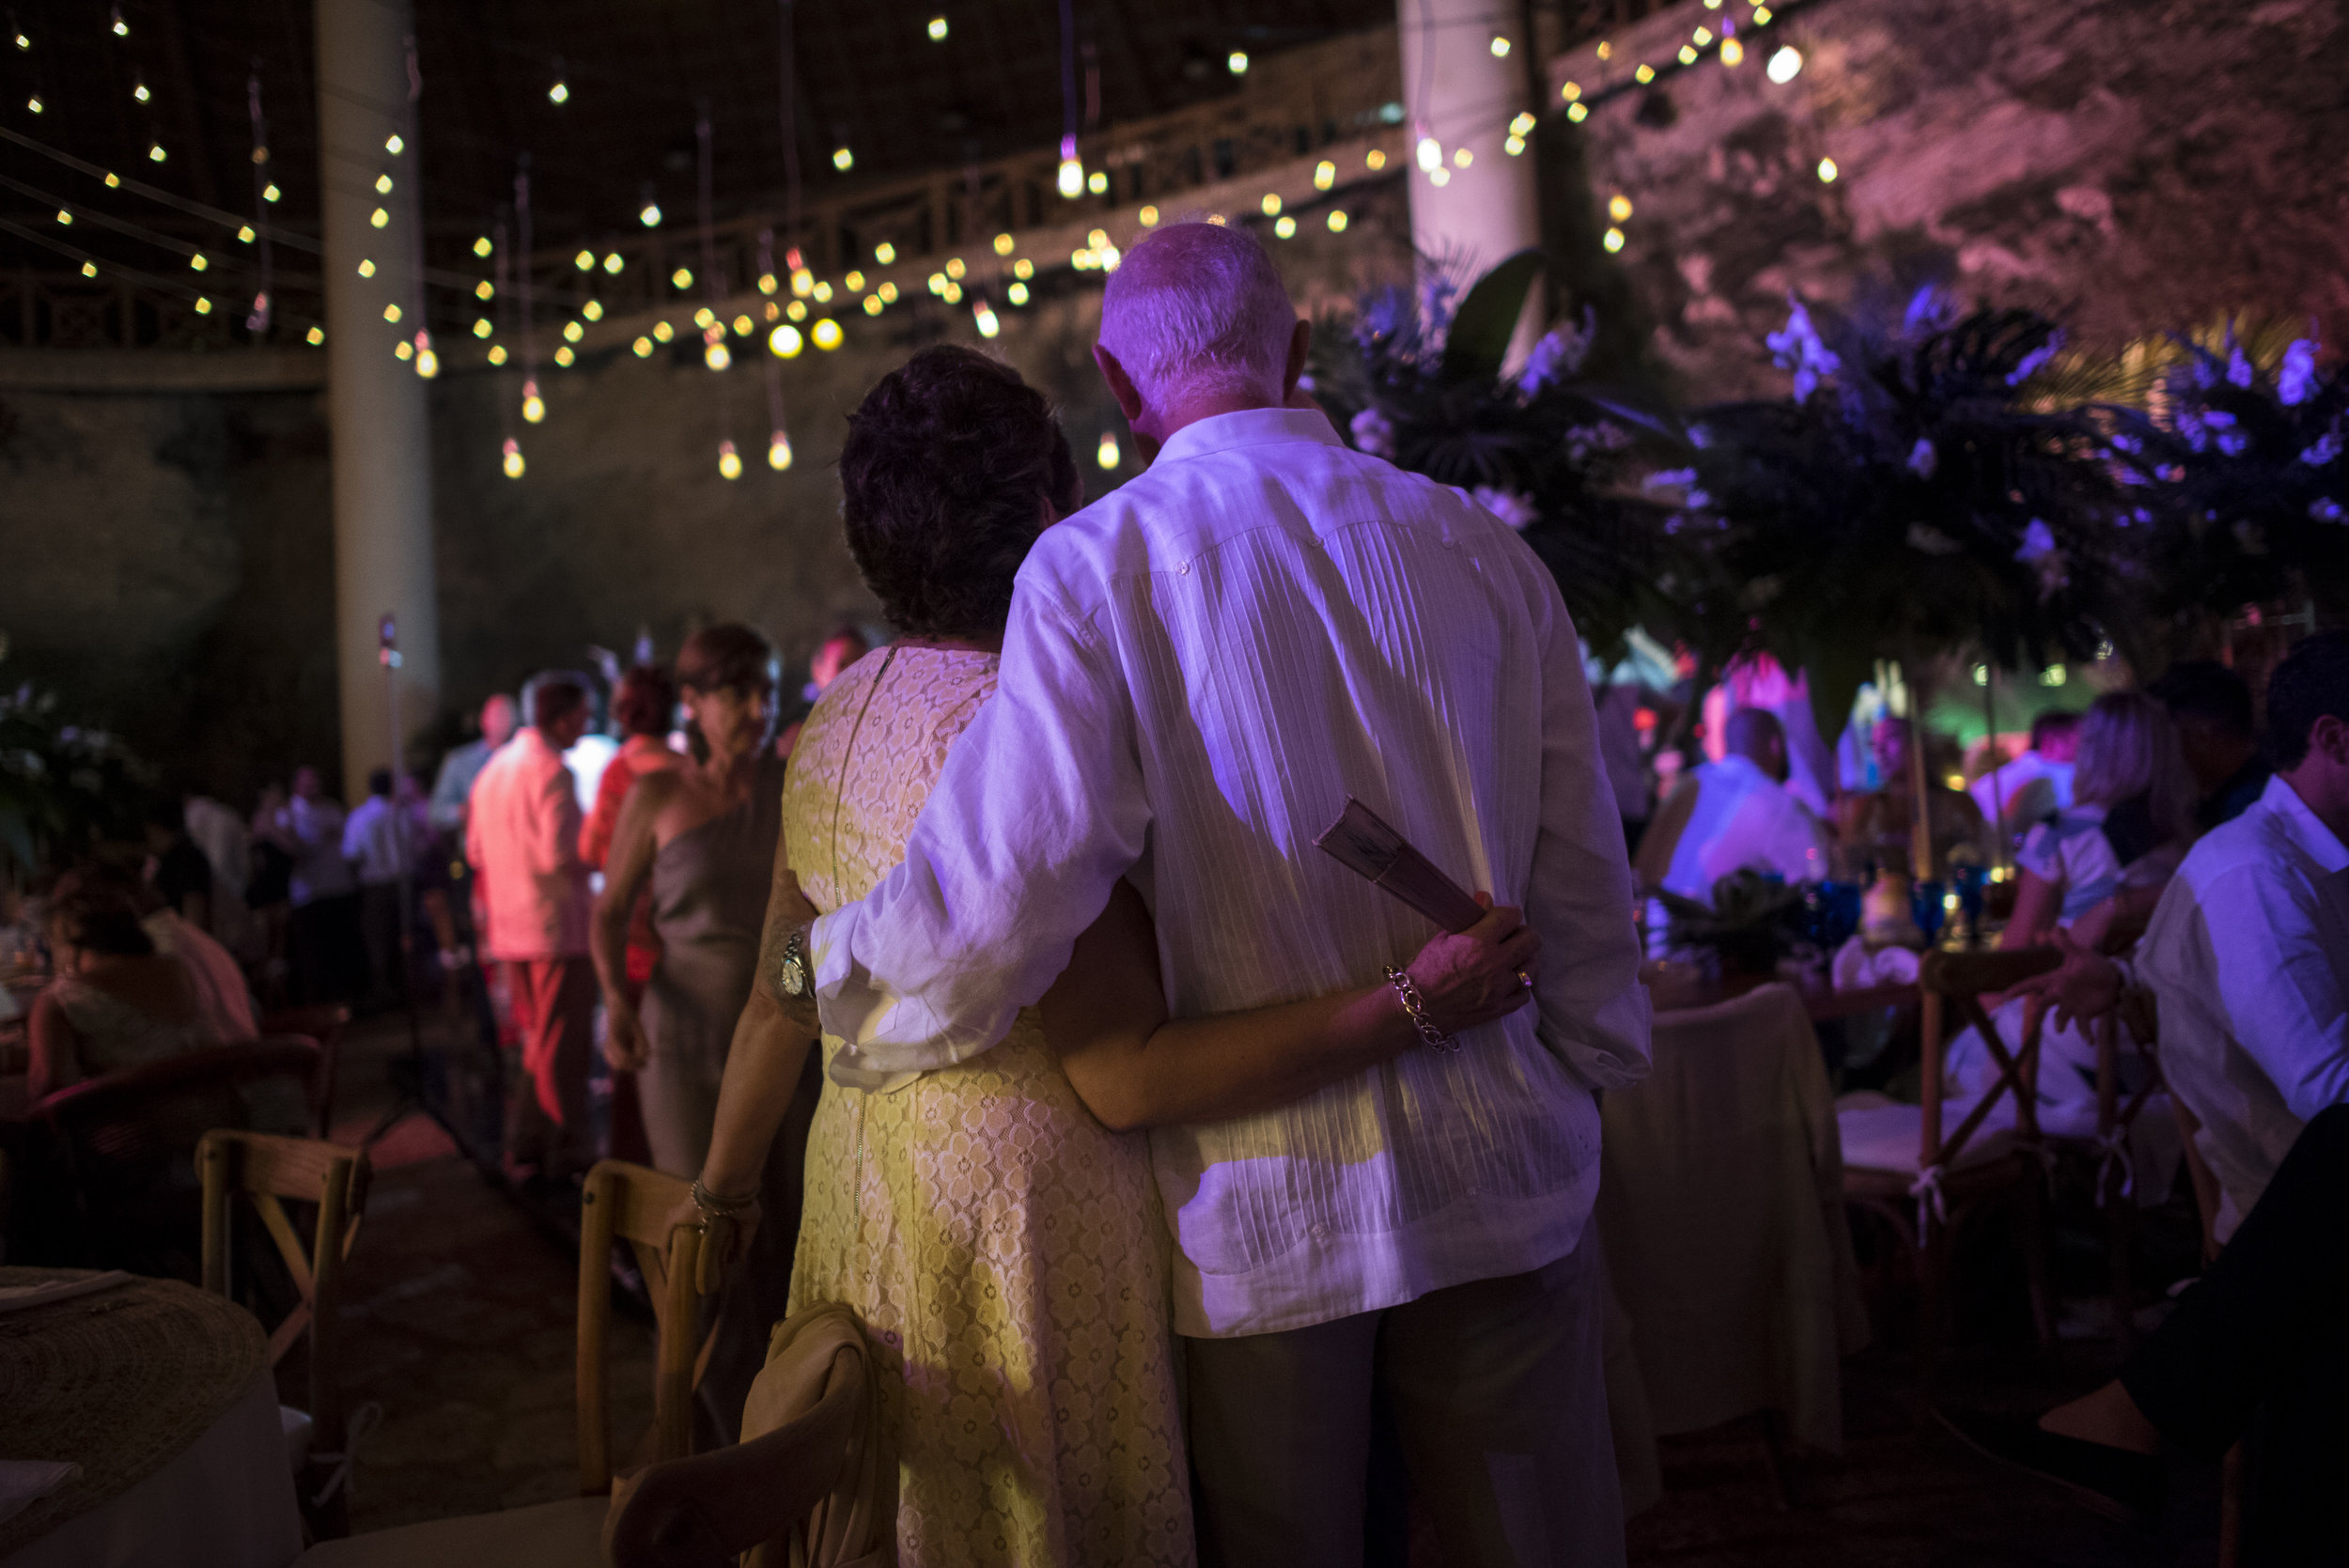 cancun_wedding_photographer_mexico (93).jpg